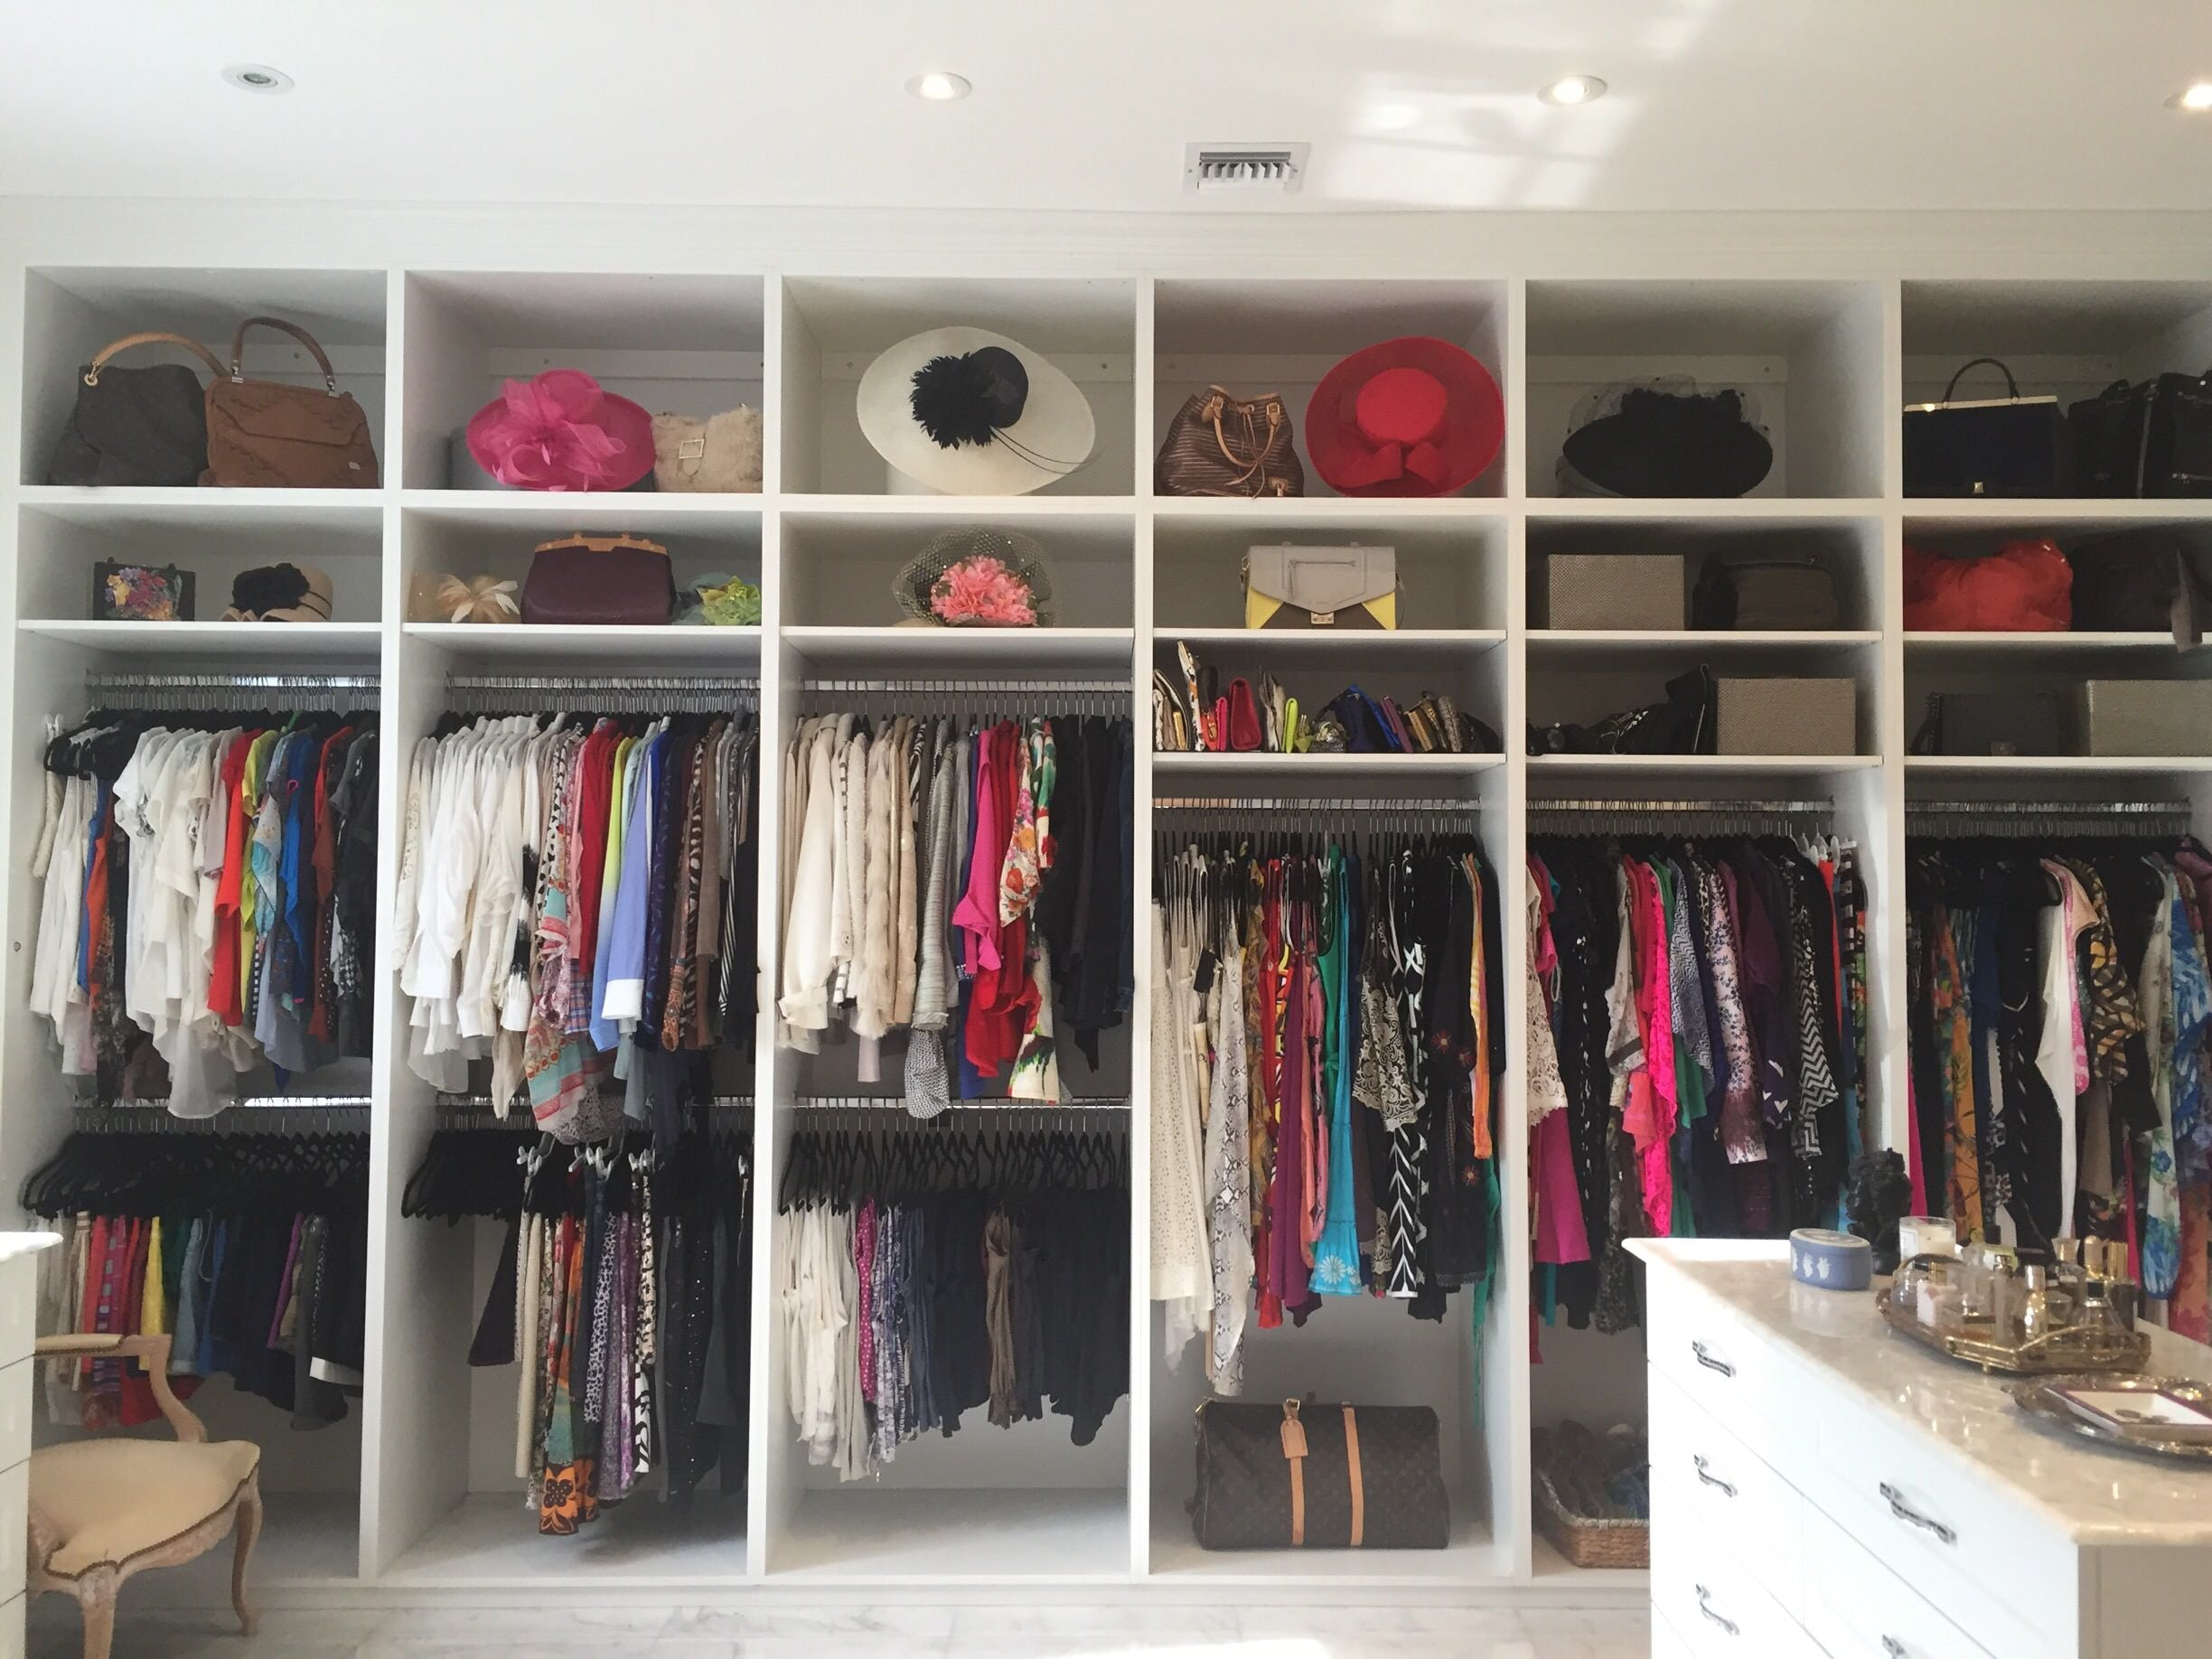 Naples, Marco Island, Professional organizer, home organization, Joyce Beers, Sunshine State, home organizing, home style, home decor, interior design, home design, home style, new home, movers, unpacking, organizing, walk in closet, dream closet,